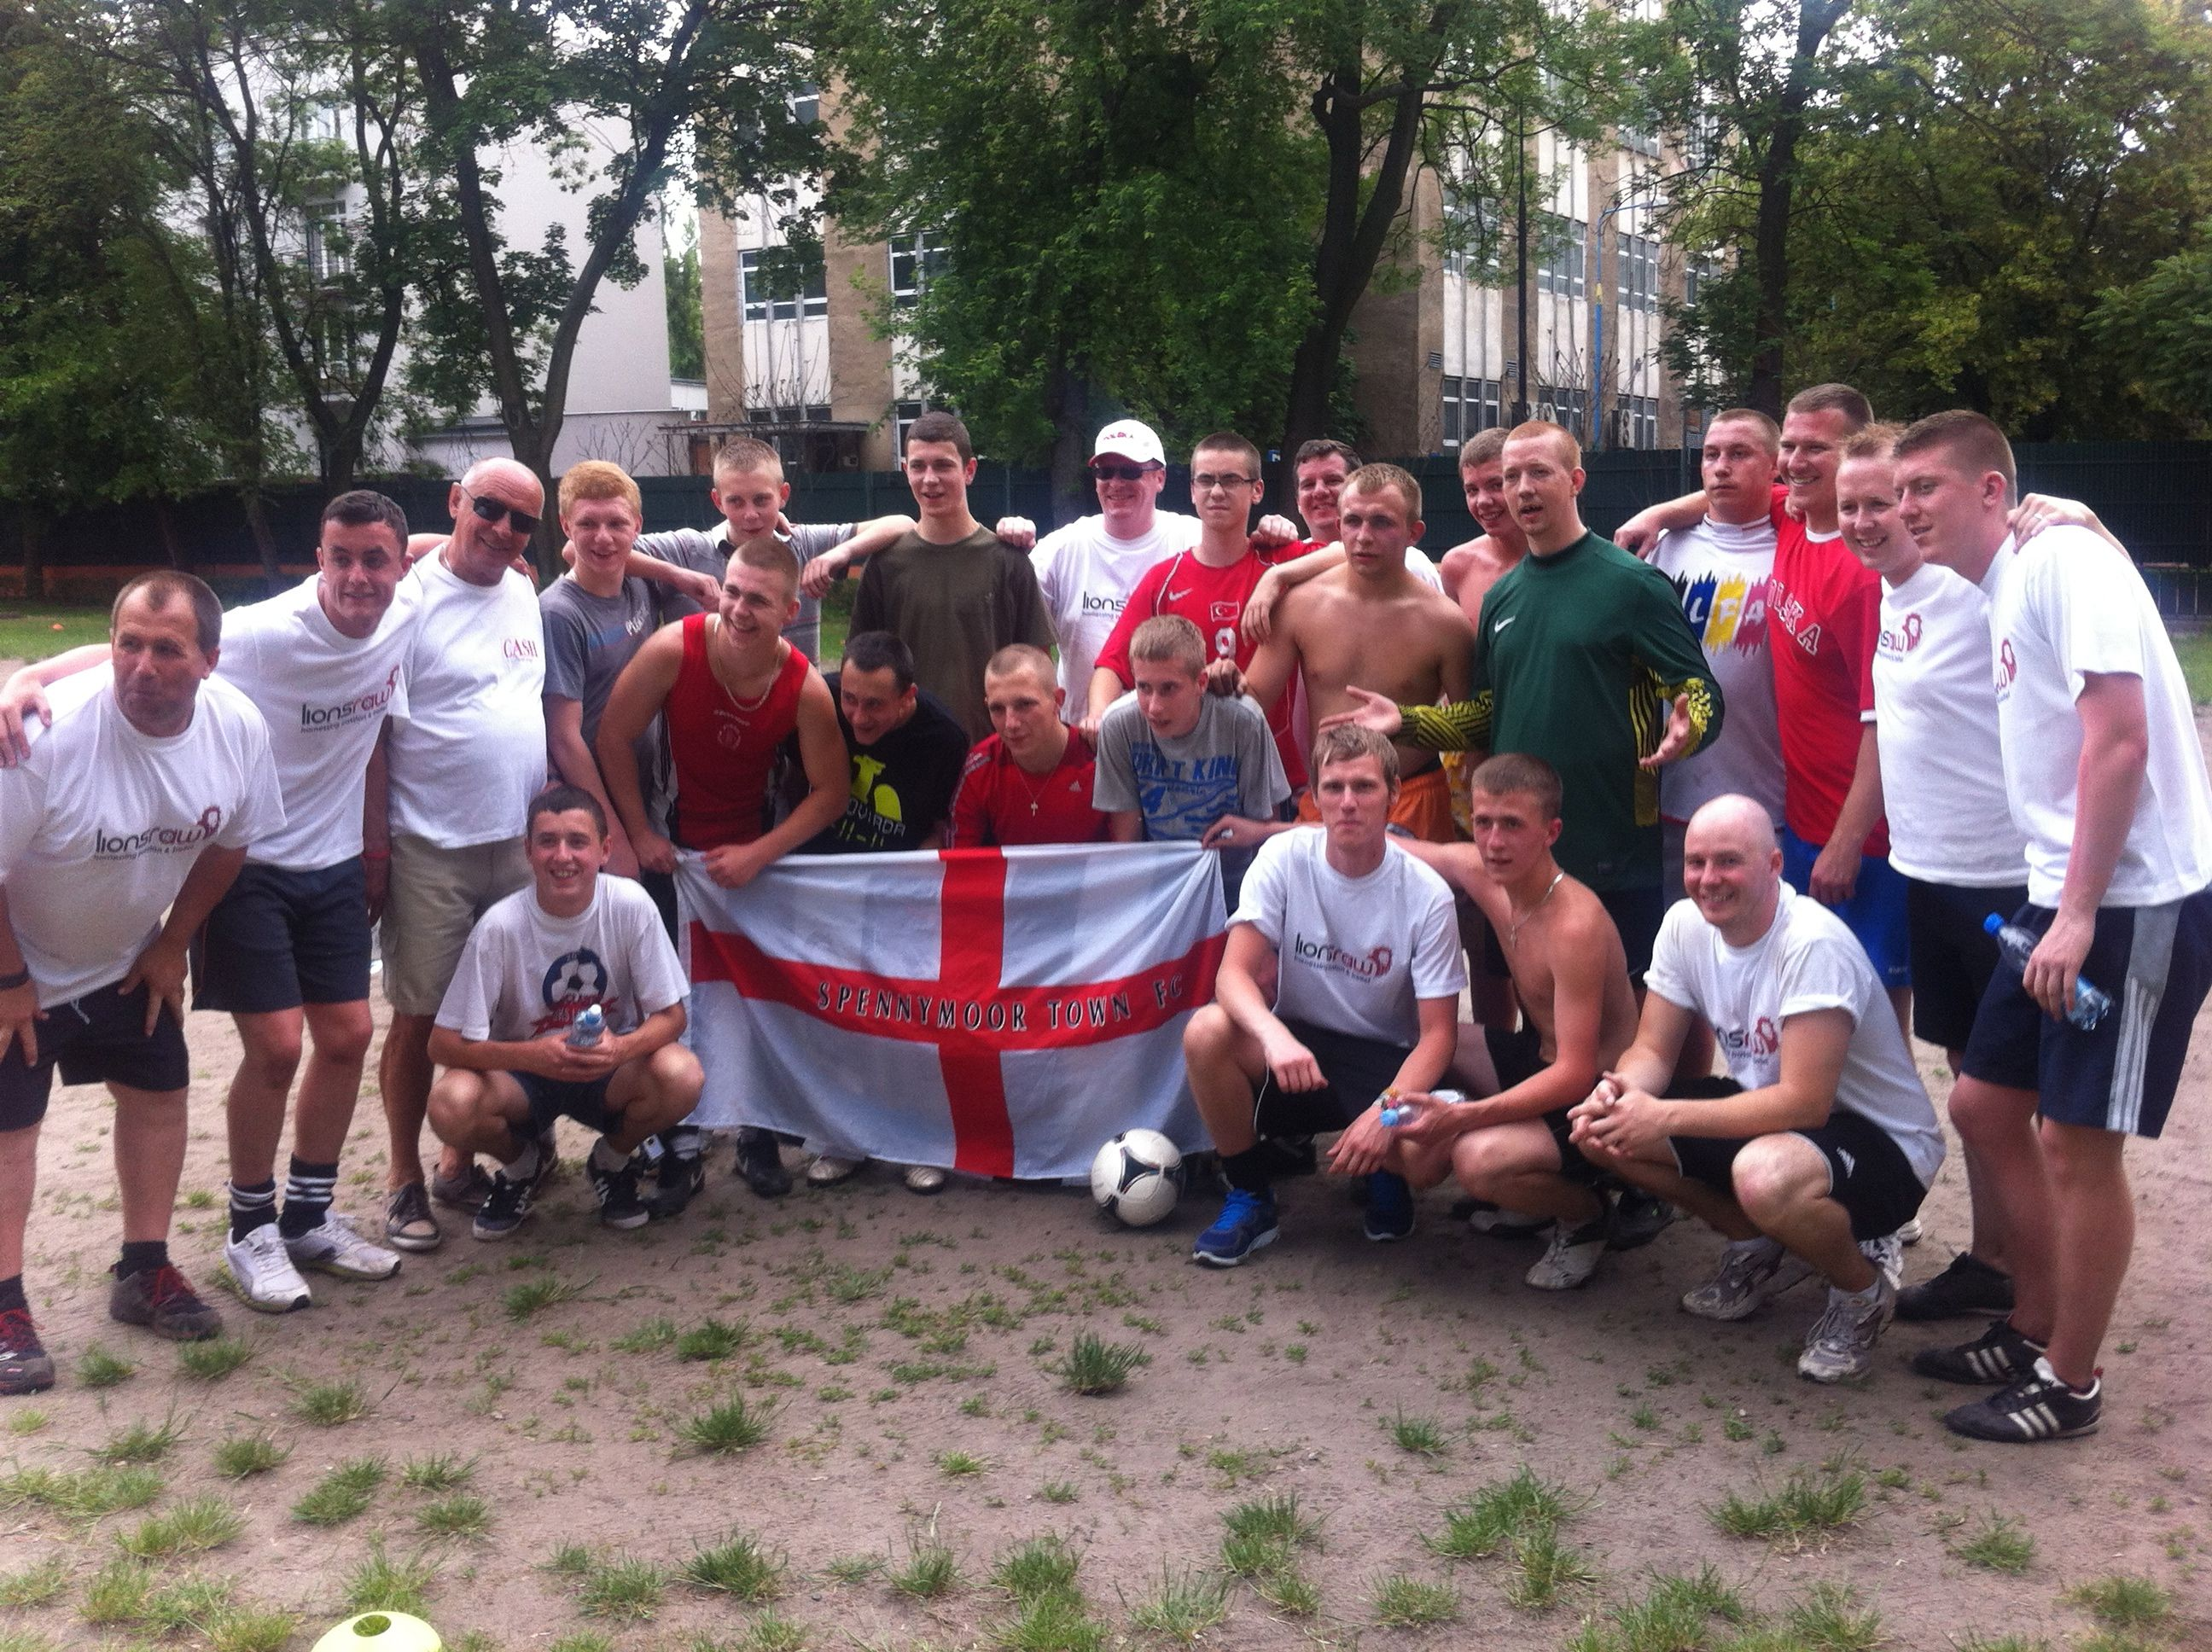 The Lionsraw Team deliver work in Young Offender Units in Warsaw, using the Football for Social change. 2012.